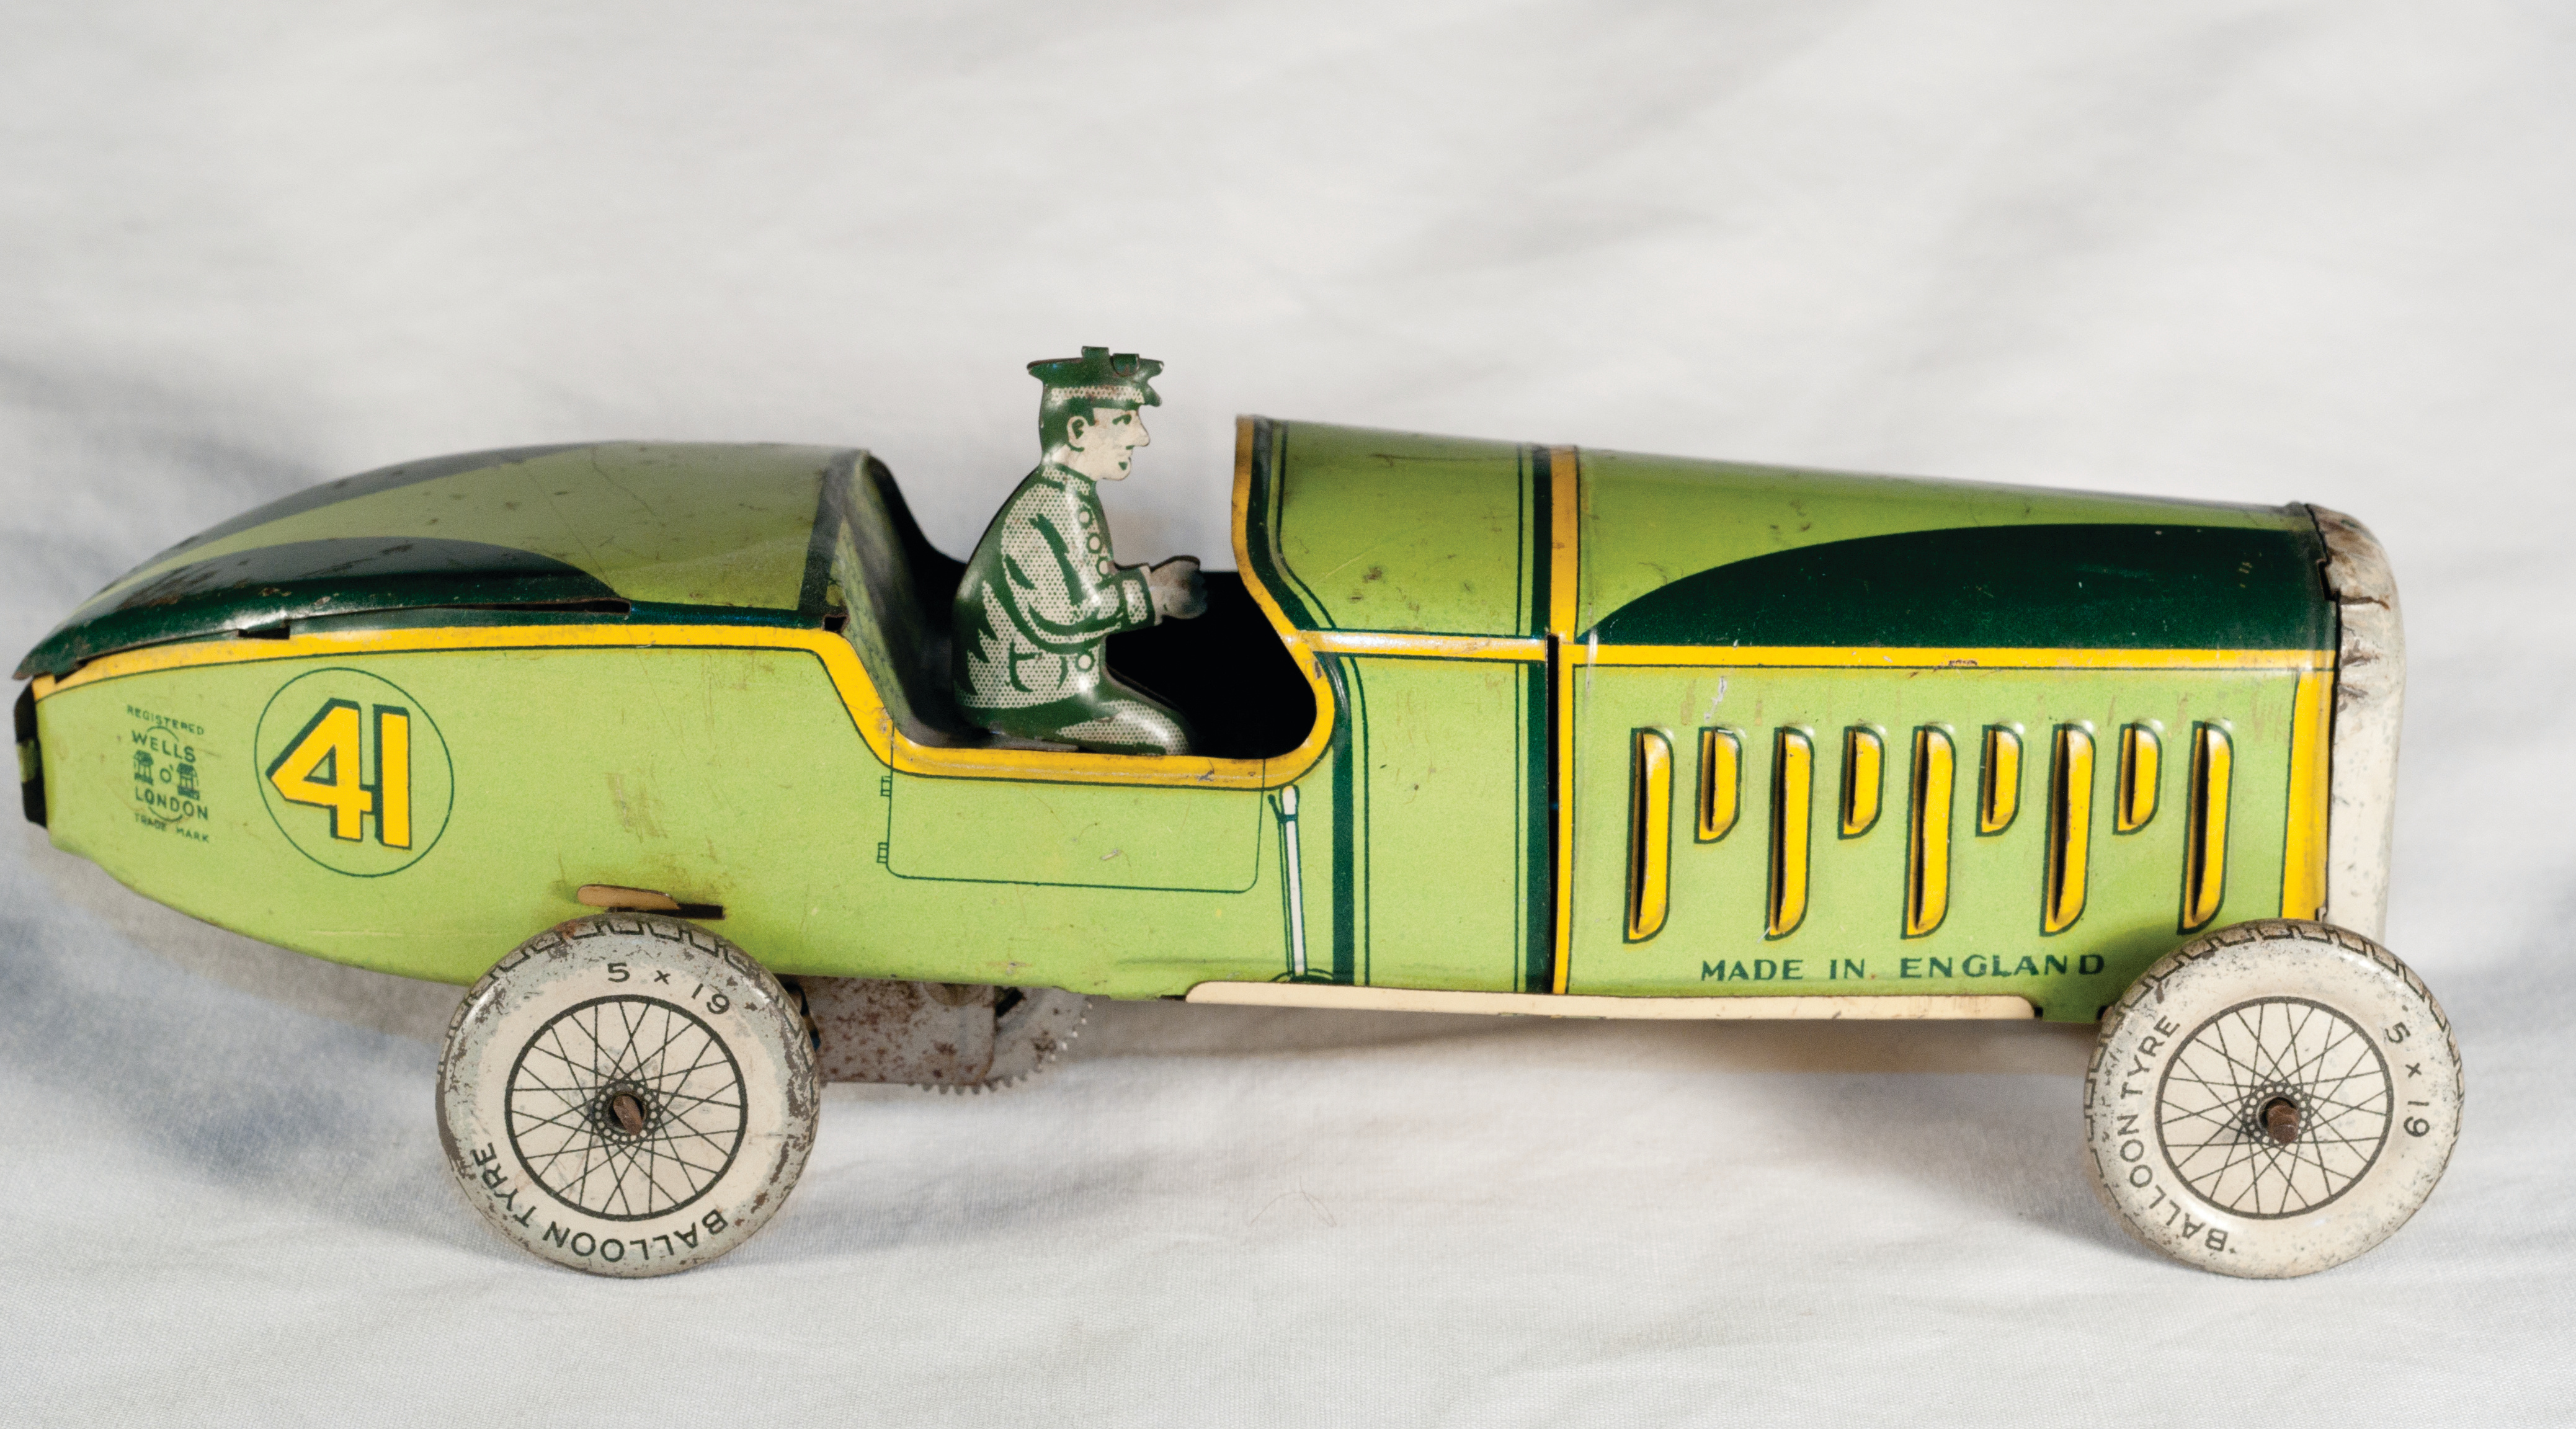 DTT0051 Green Car No 41 Pic 3